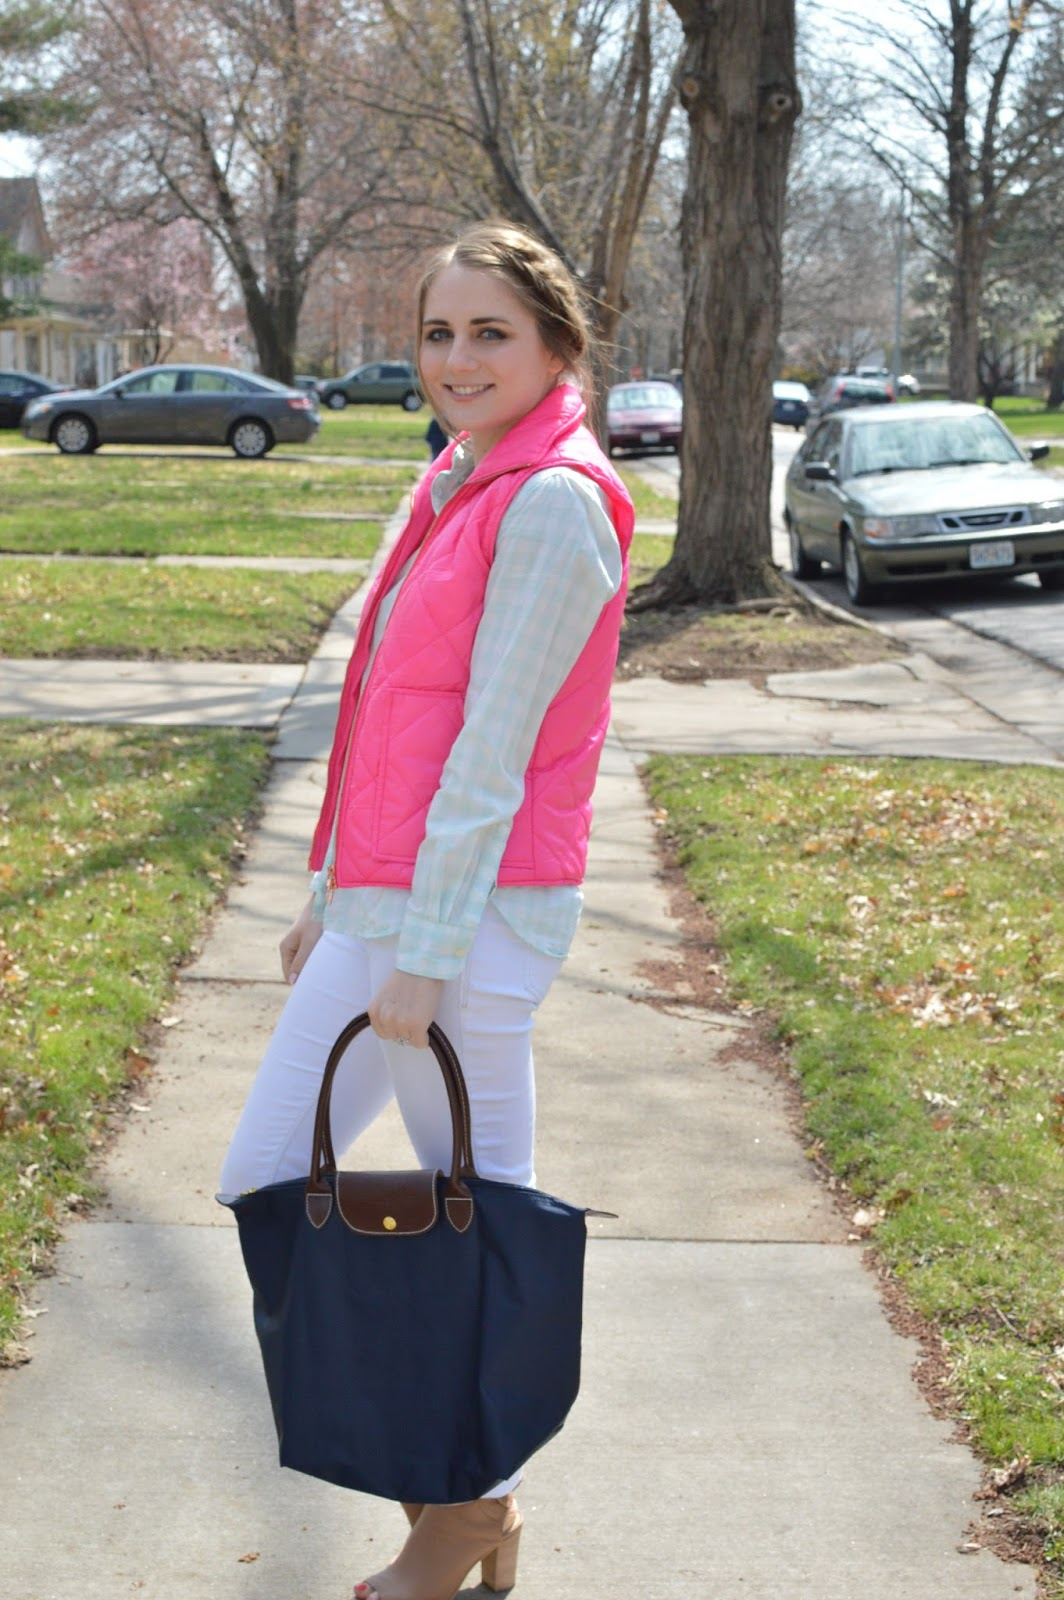 preppy for spring | pink and mint | what to wear with white jeans | pink vest outfit ideas | mint gingham top | preppy outfit ideas | spring looks | spring fashion | street style  | a memory of us